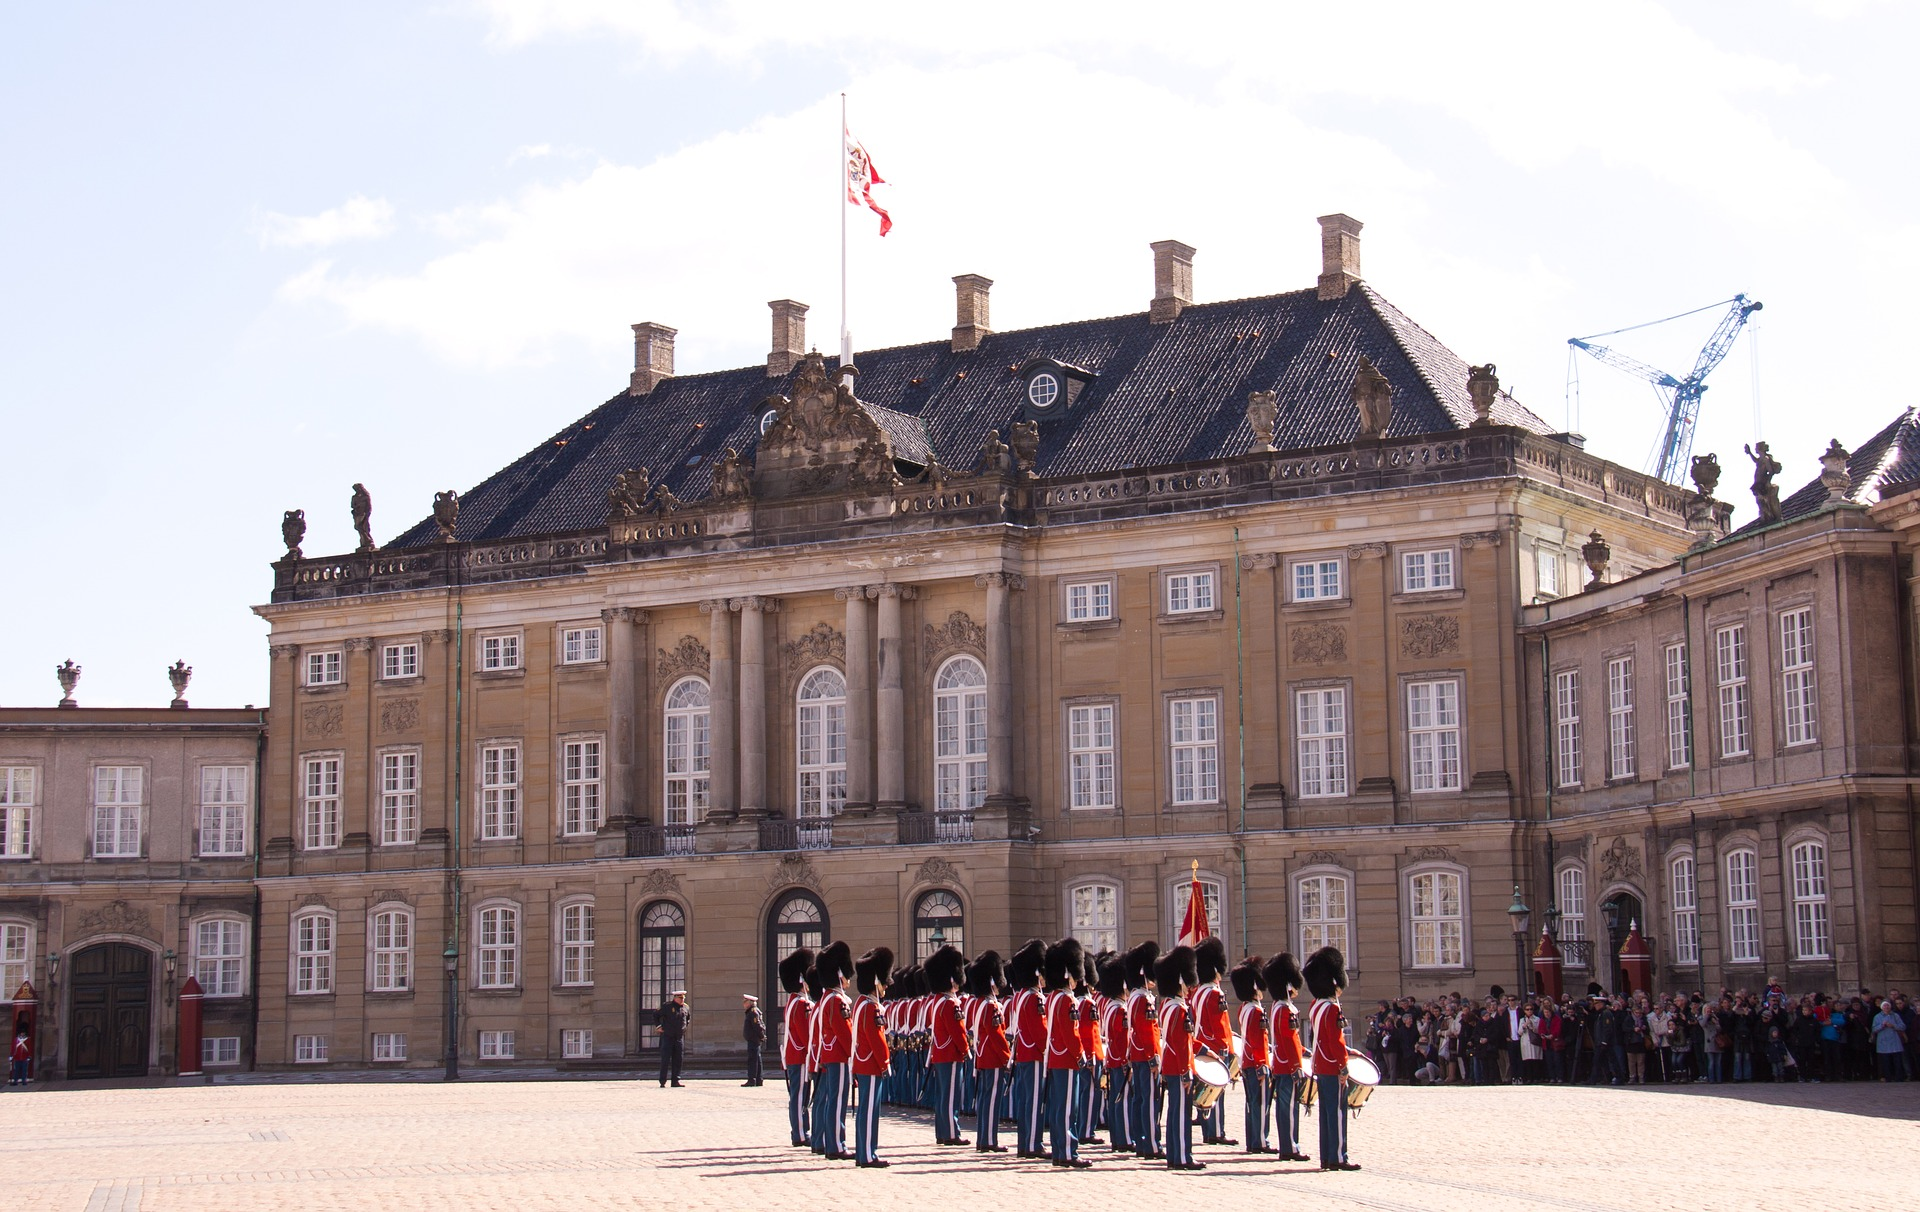 Band at Amalienborg Palace, Copenhagen, Denmark